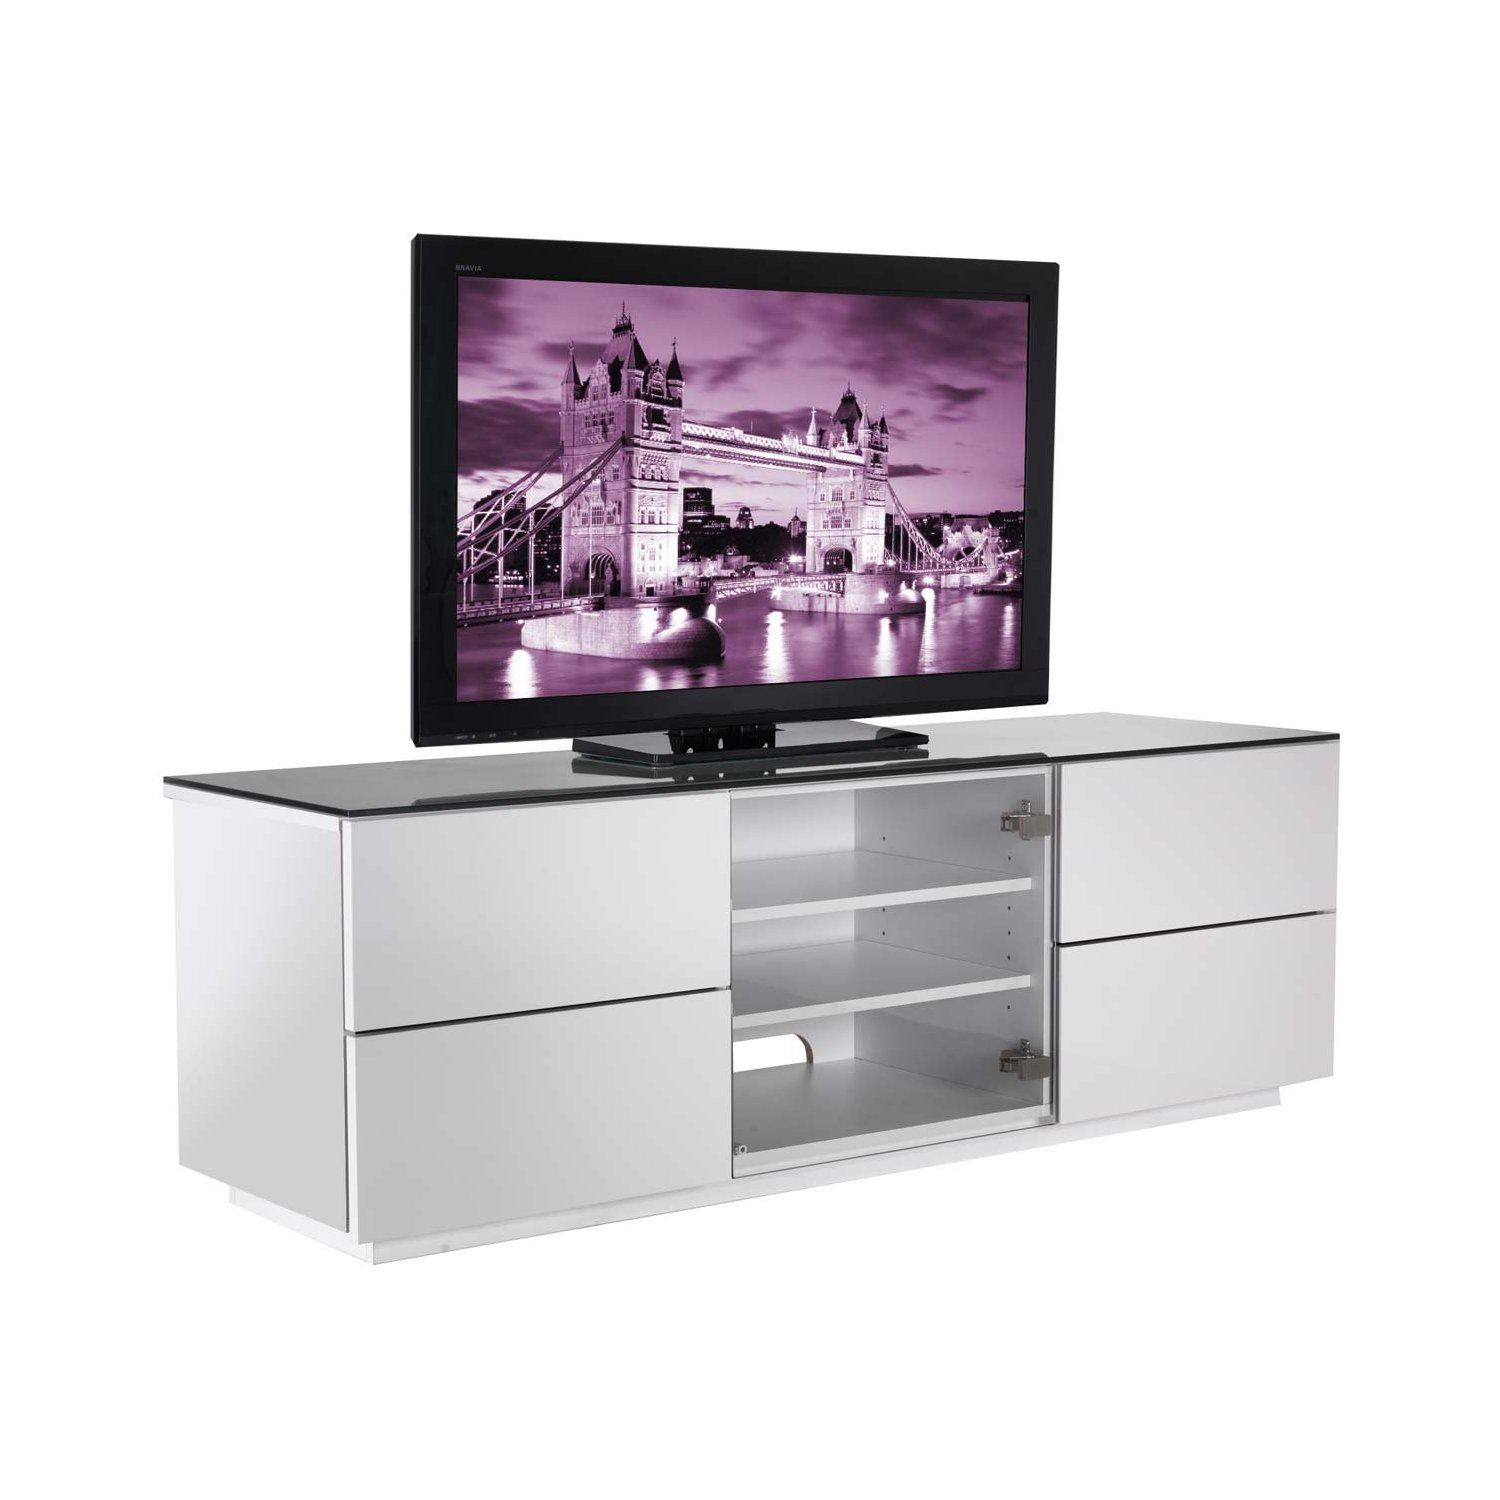 uk cf high gloss white cabinet for tvs up to 60 inch amazon co uk